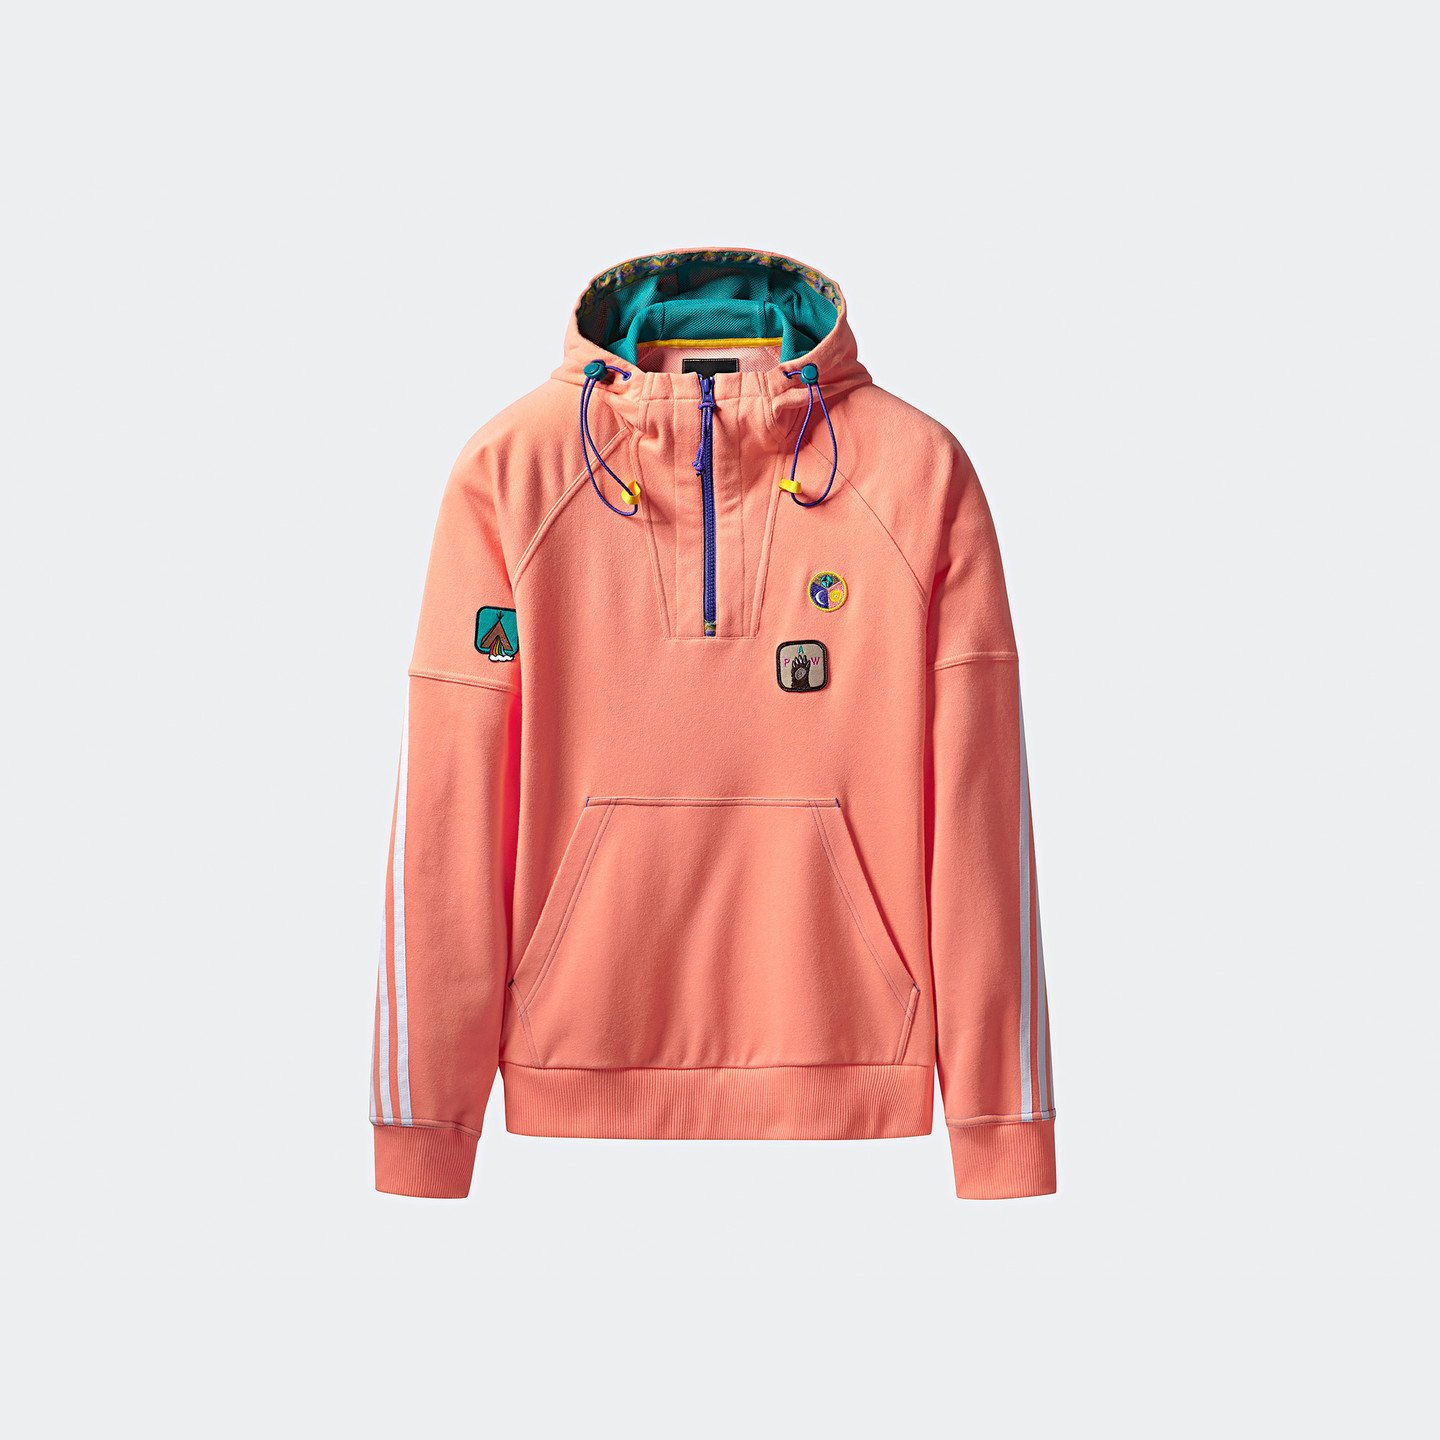 Adidas Pharrell Williams 'Human Race' Hoodie Sun Glow / EQT Green CE9484